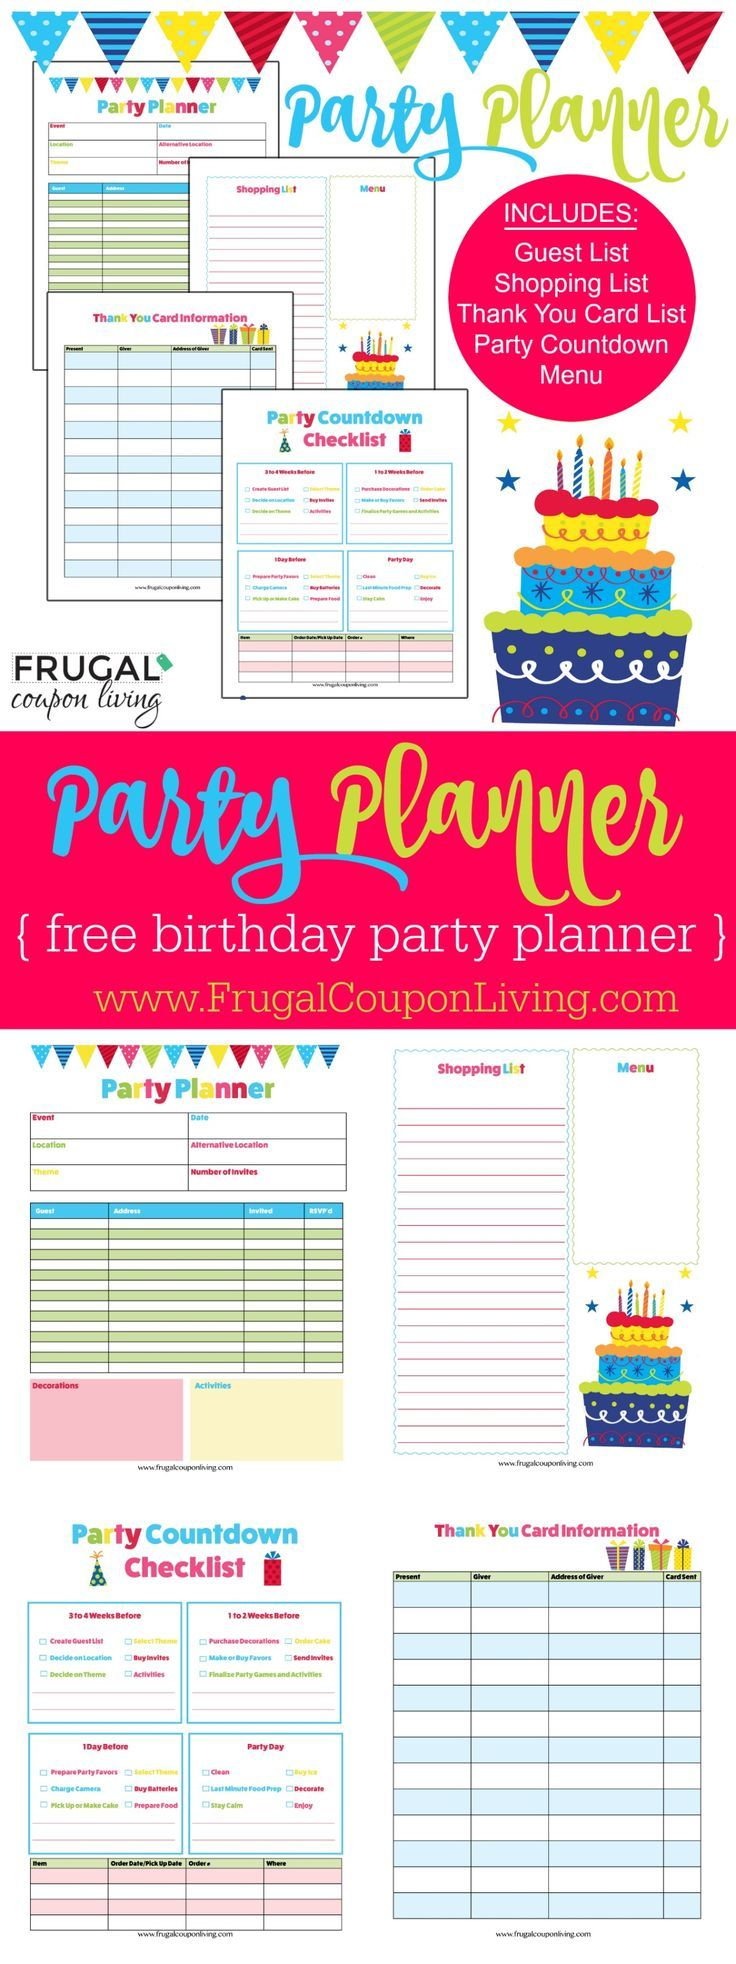 FREE Birthday Party Planner on Frugal Coupon Living - great for kids or adults. Kit includes a guest list, shopping list, thank you card list, party countdown and menu. Birthday Party Resource. Birthday Party Ideas.